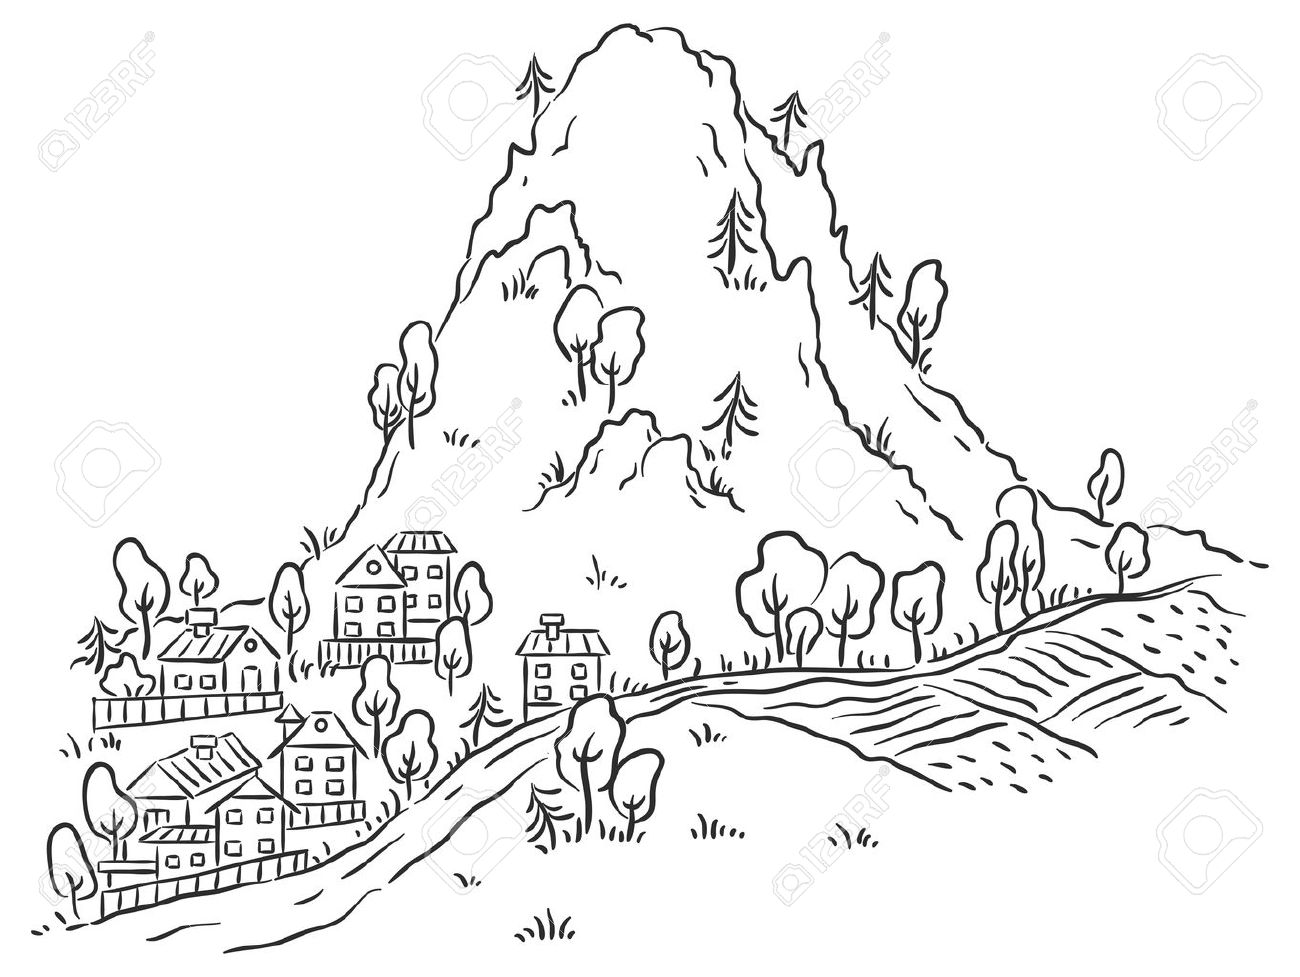 Cartoon Town At The Foot Of The Mountain Black And White Outline